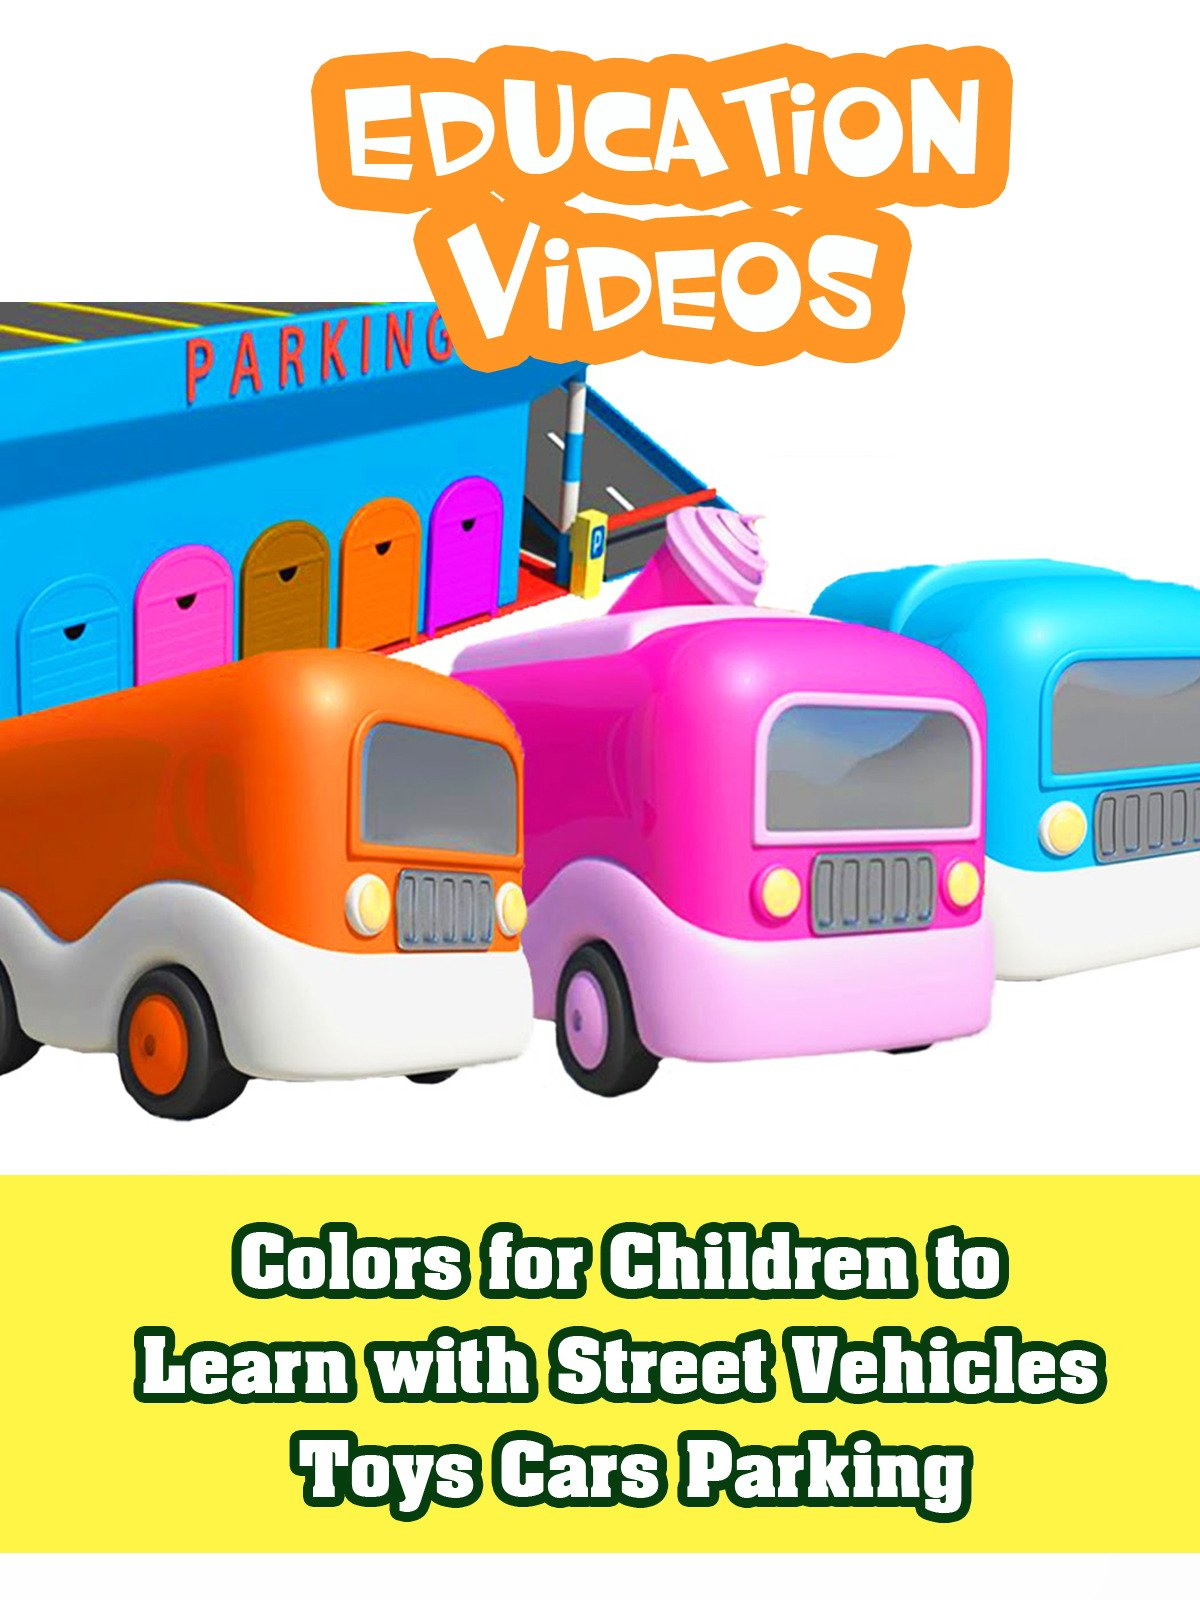 Colors for Children to Learn with Street Vehicles Toys Cars Parking